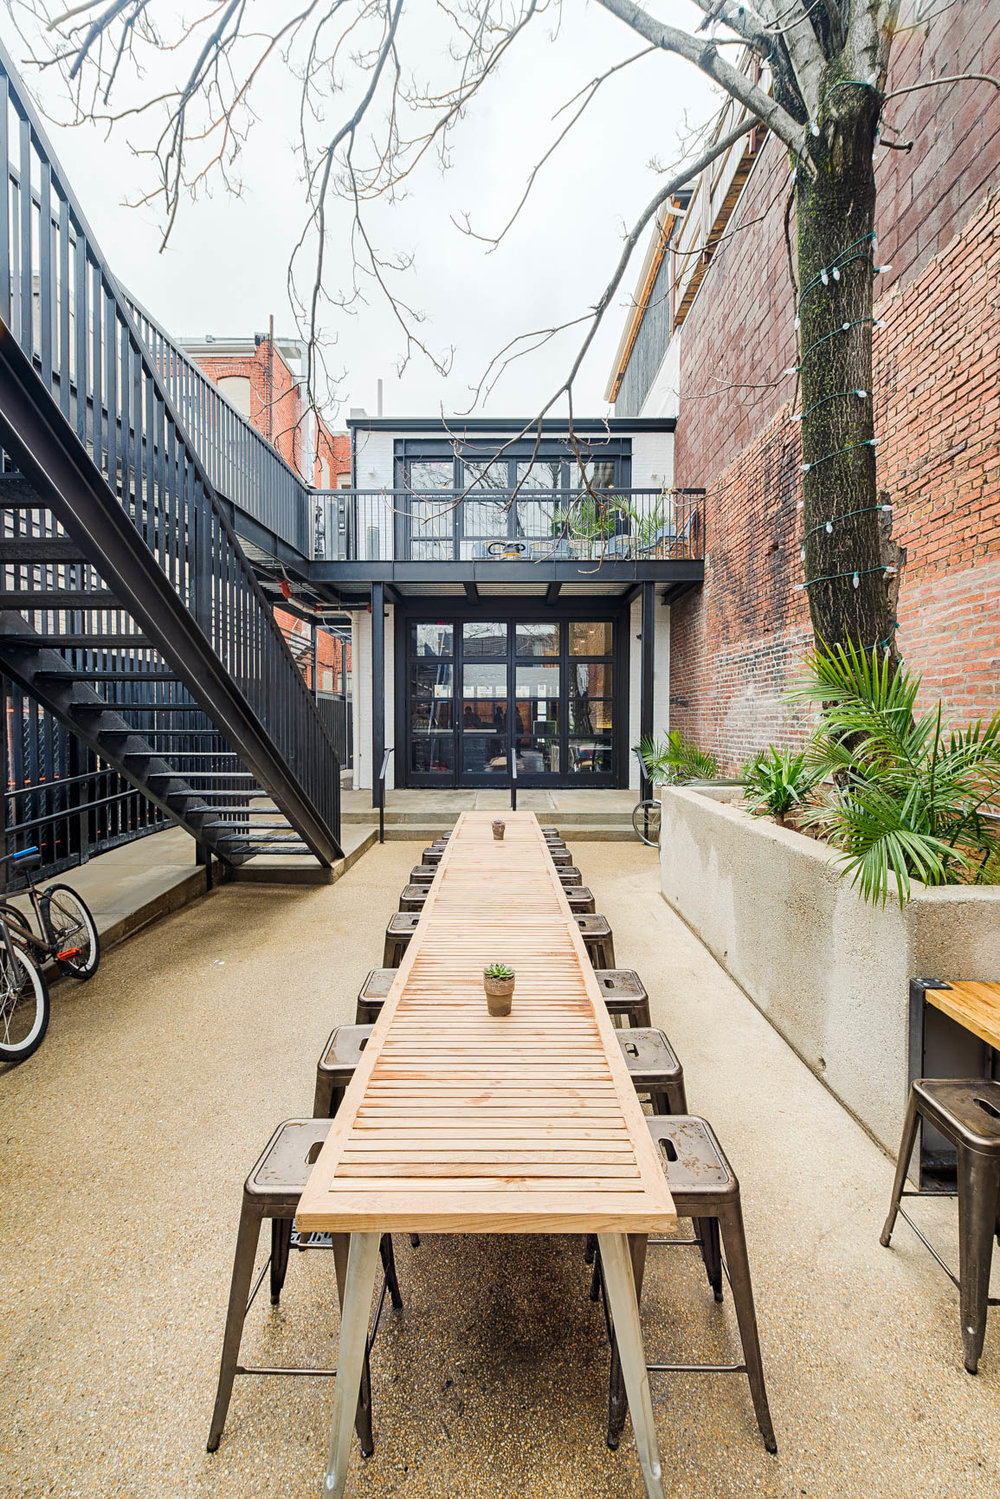 studio-saint-bars-and-restaurants-maketto-washington-dc-3